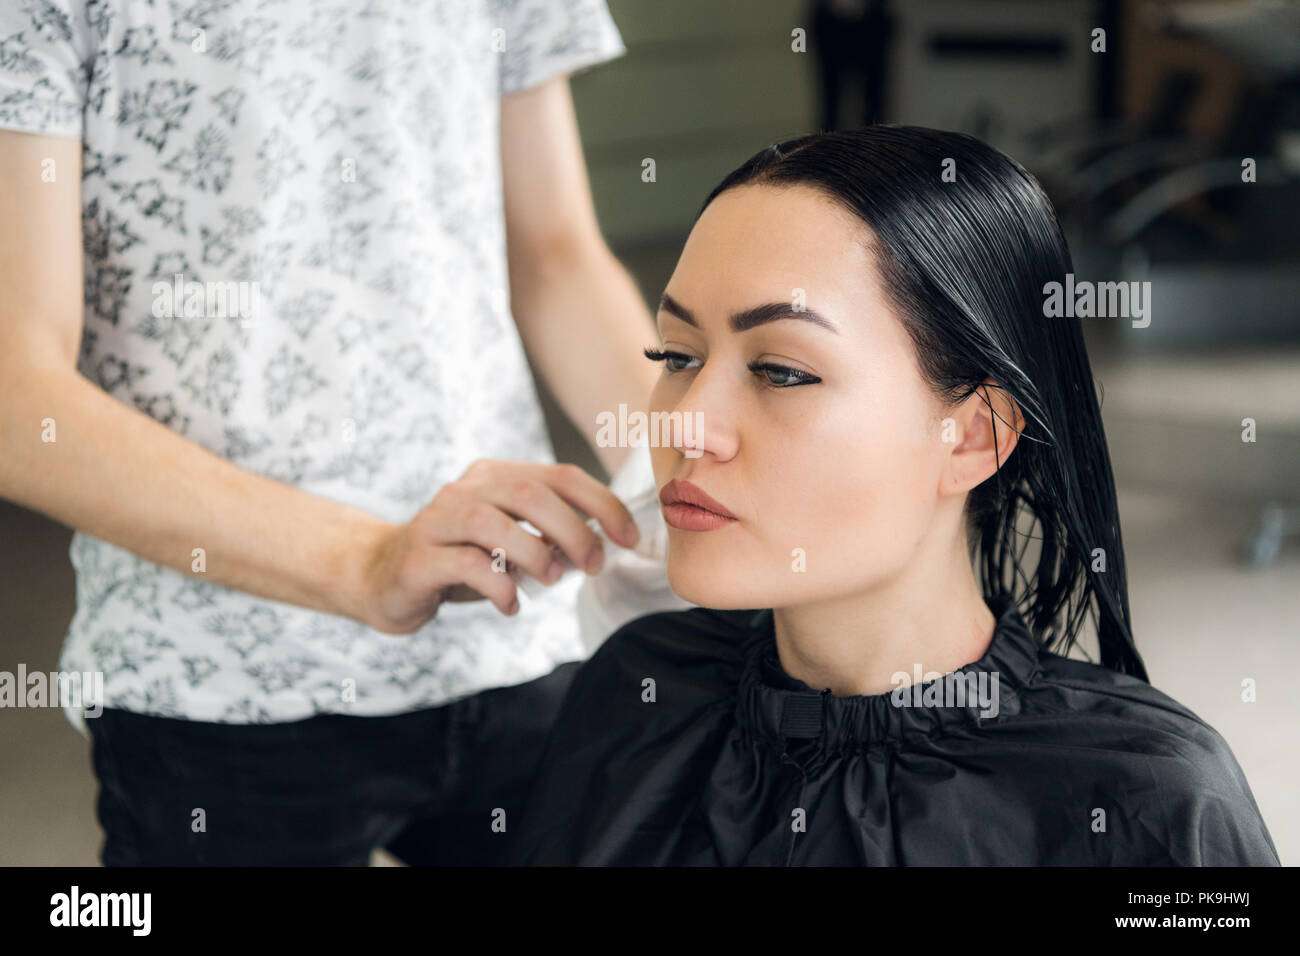 Hairdresser cutting woman's hair in salon, smiling, front view, close-up, portrait Stock Photo